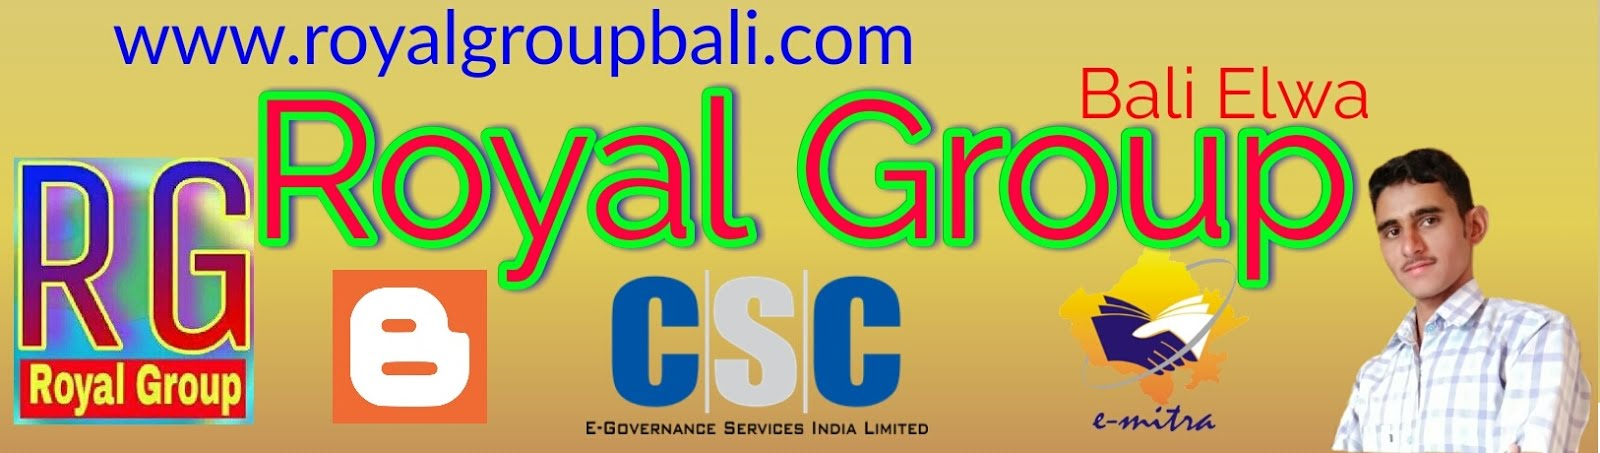 Royal Group - Csc, Emitra, New govt scheme, Rajasthan News, Emitra ki jankari